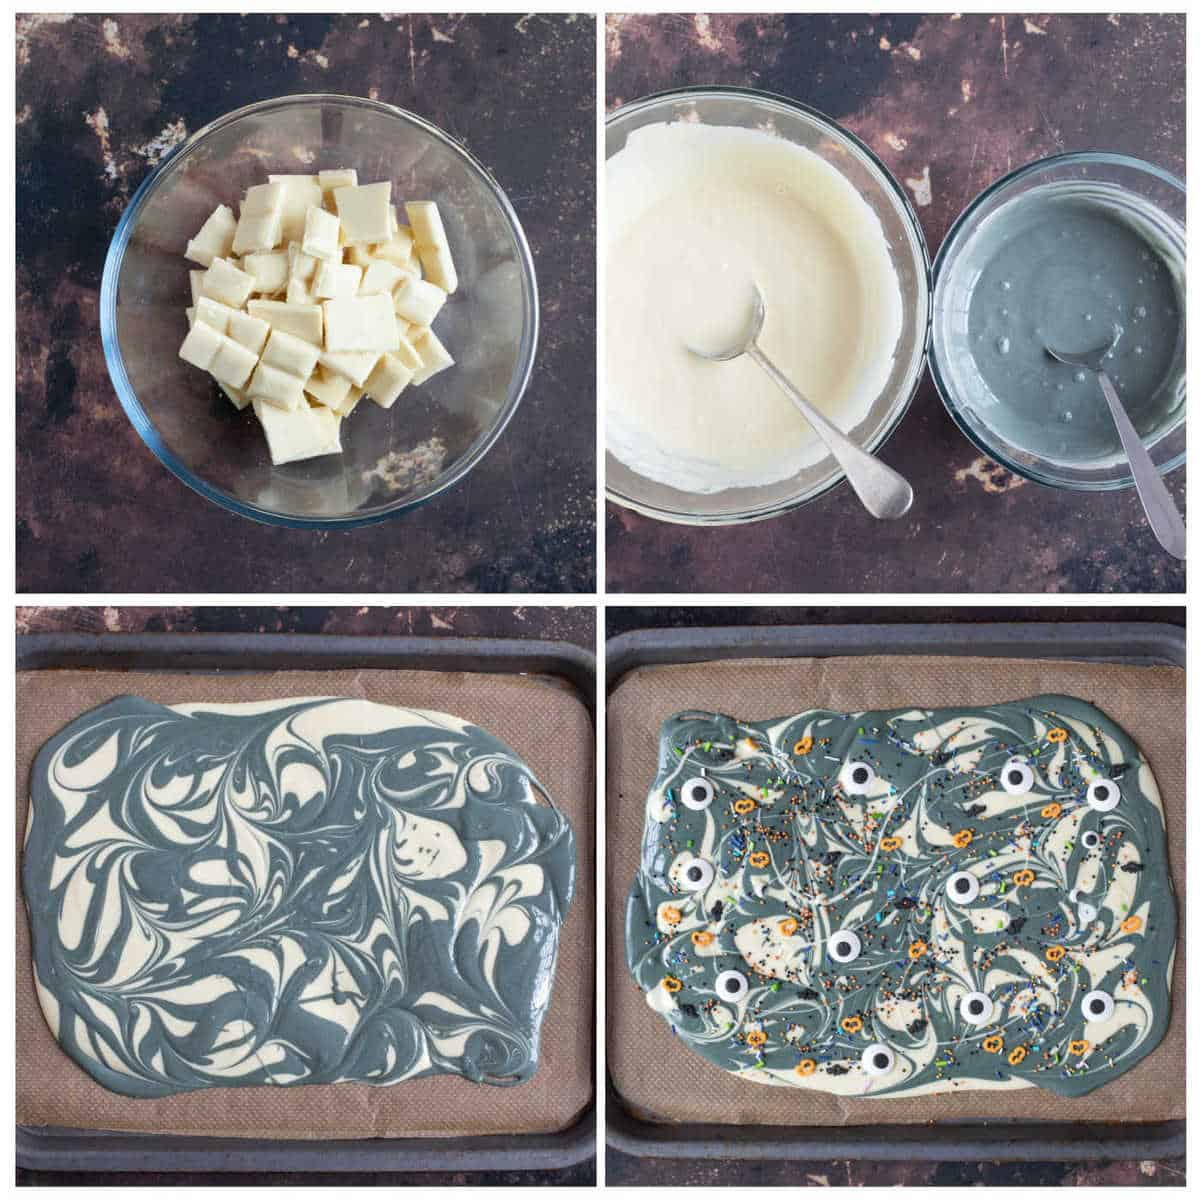 Step by step photo instructions for making Halloween chocolate bark.